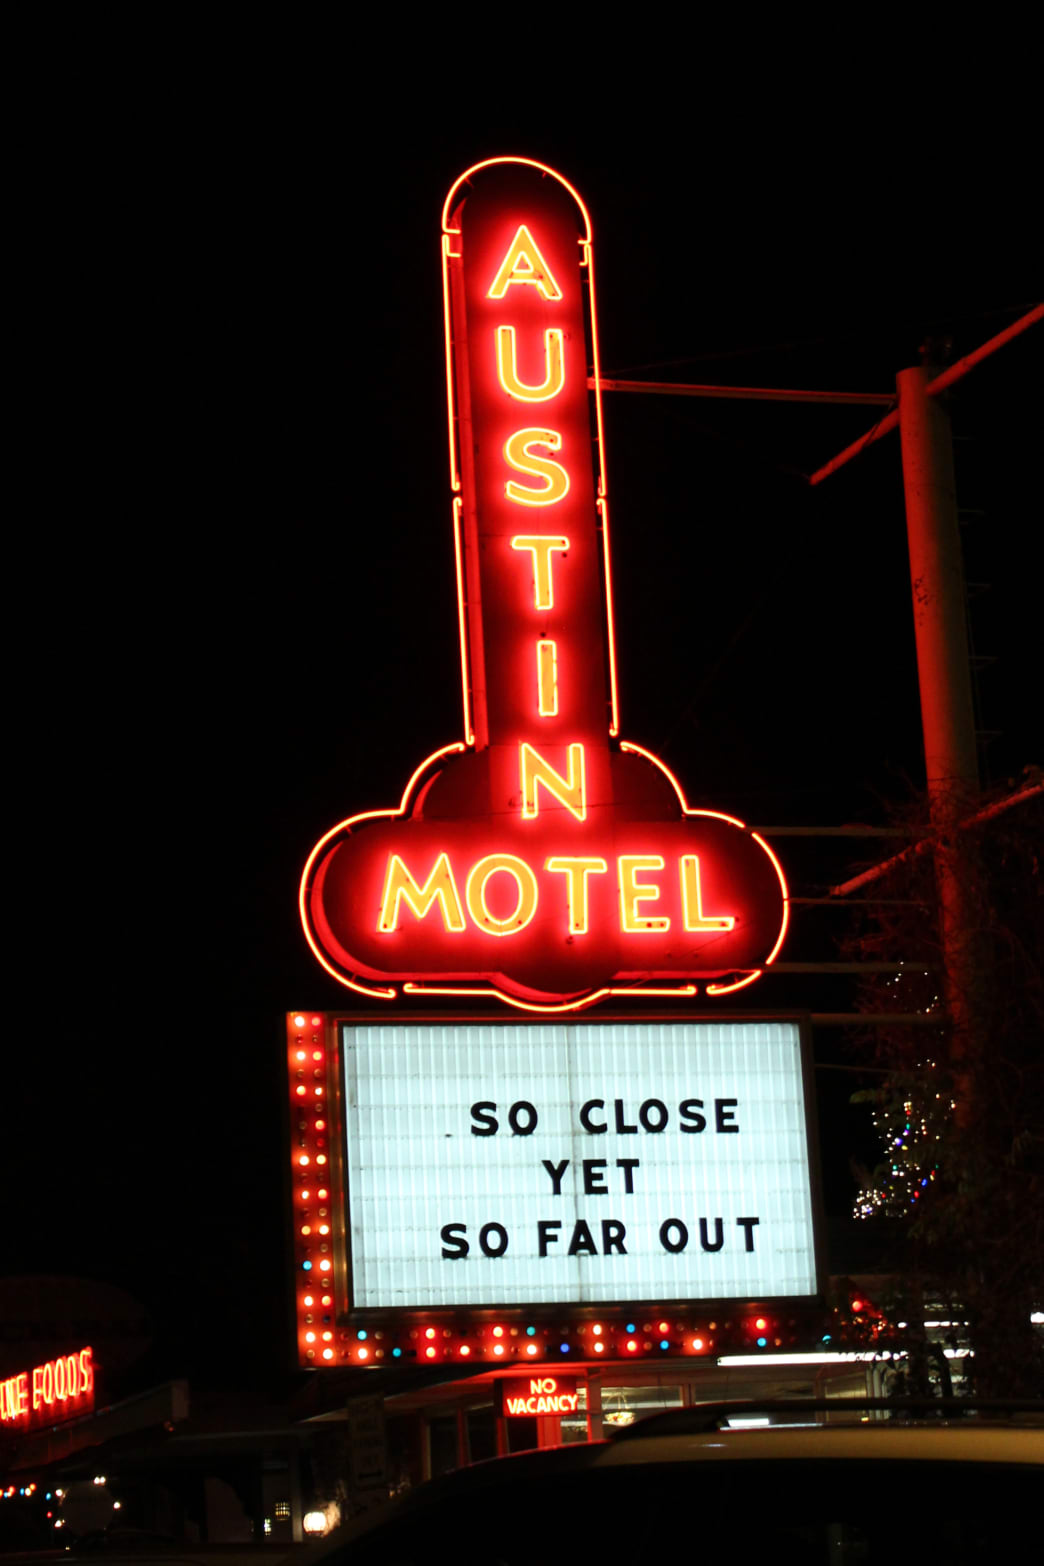 Call it a night at the Austin Motel, an iconic Austin landmark on South Congress.